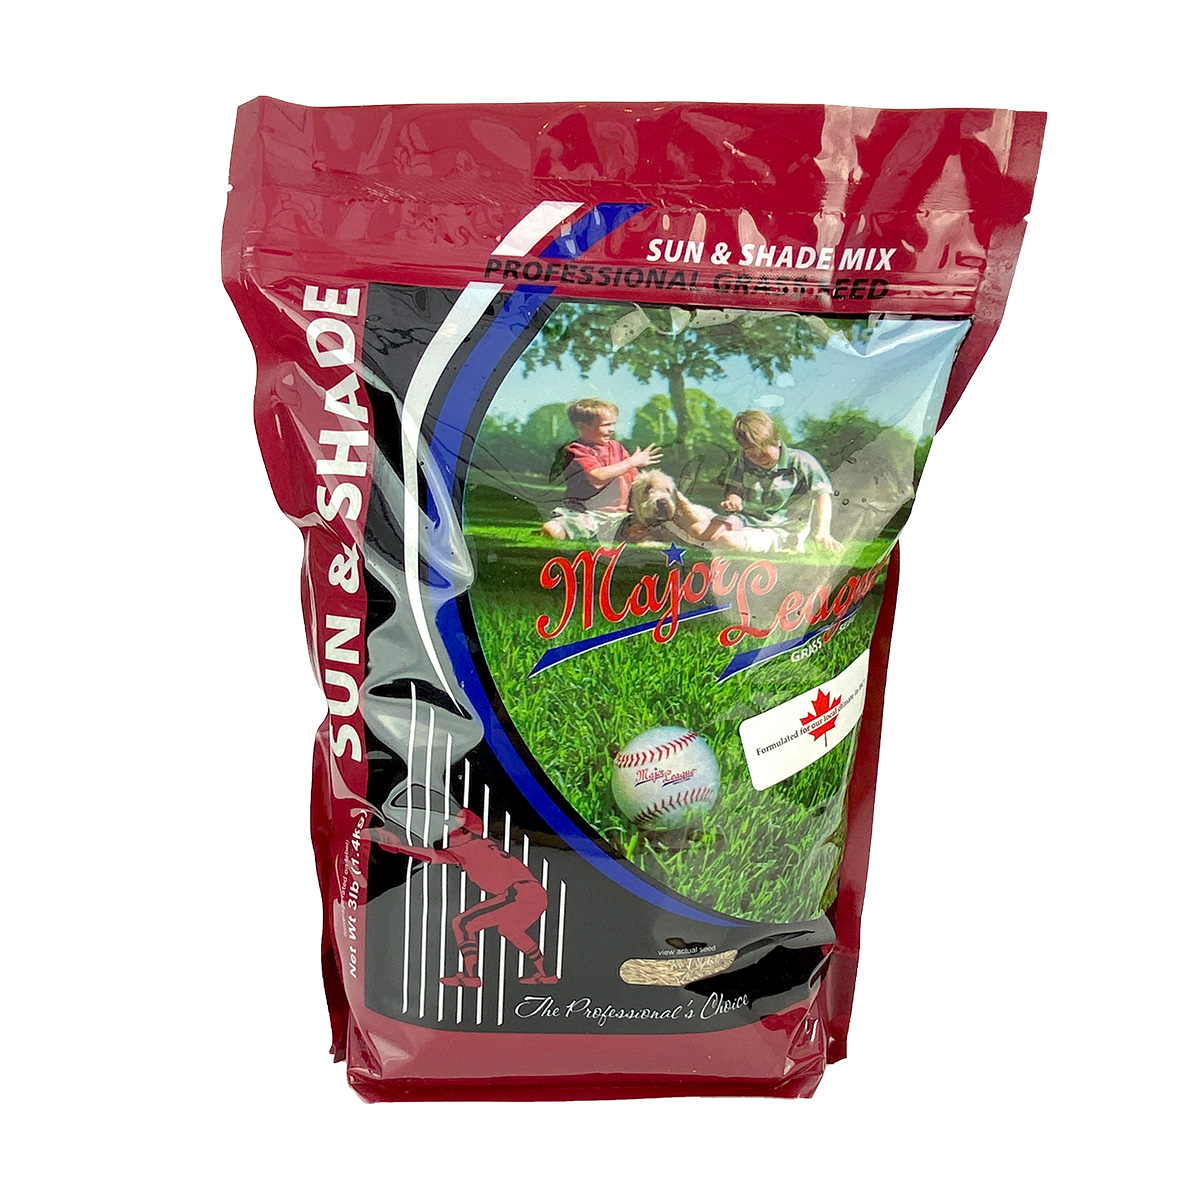 Major League Grass Seed Sun and Shade Mix 1.4kg